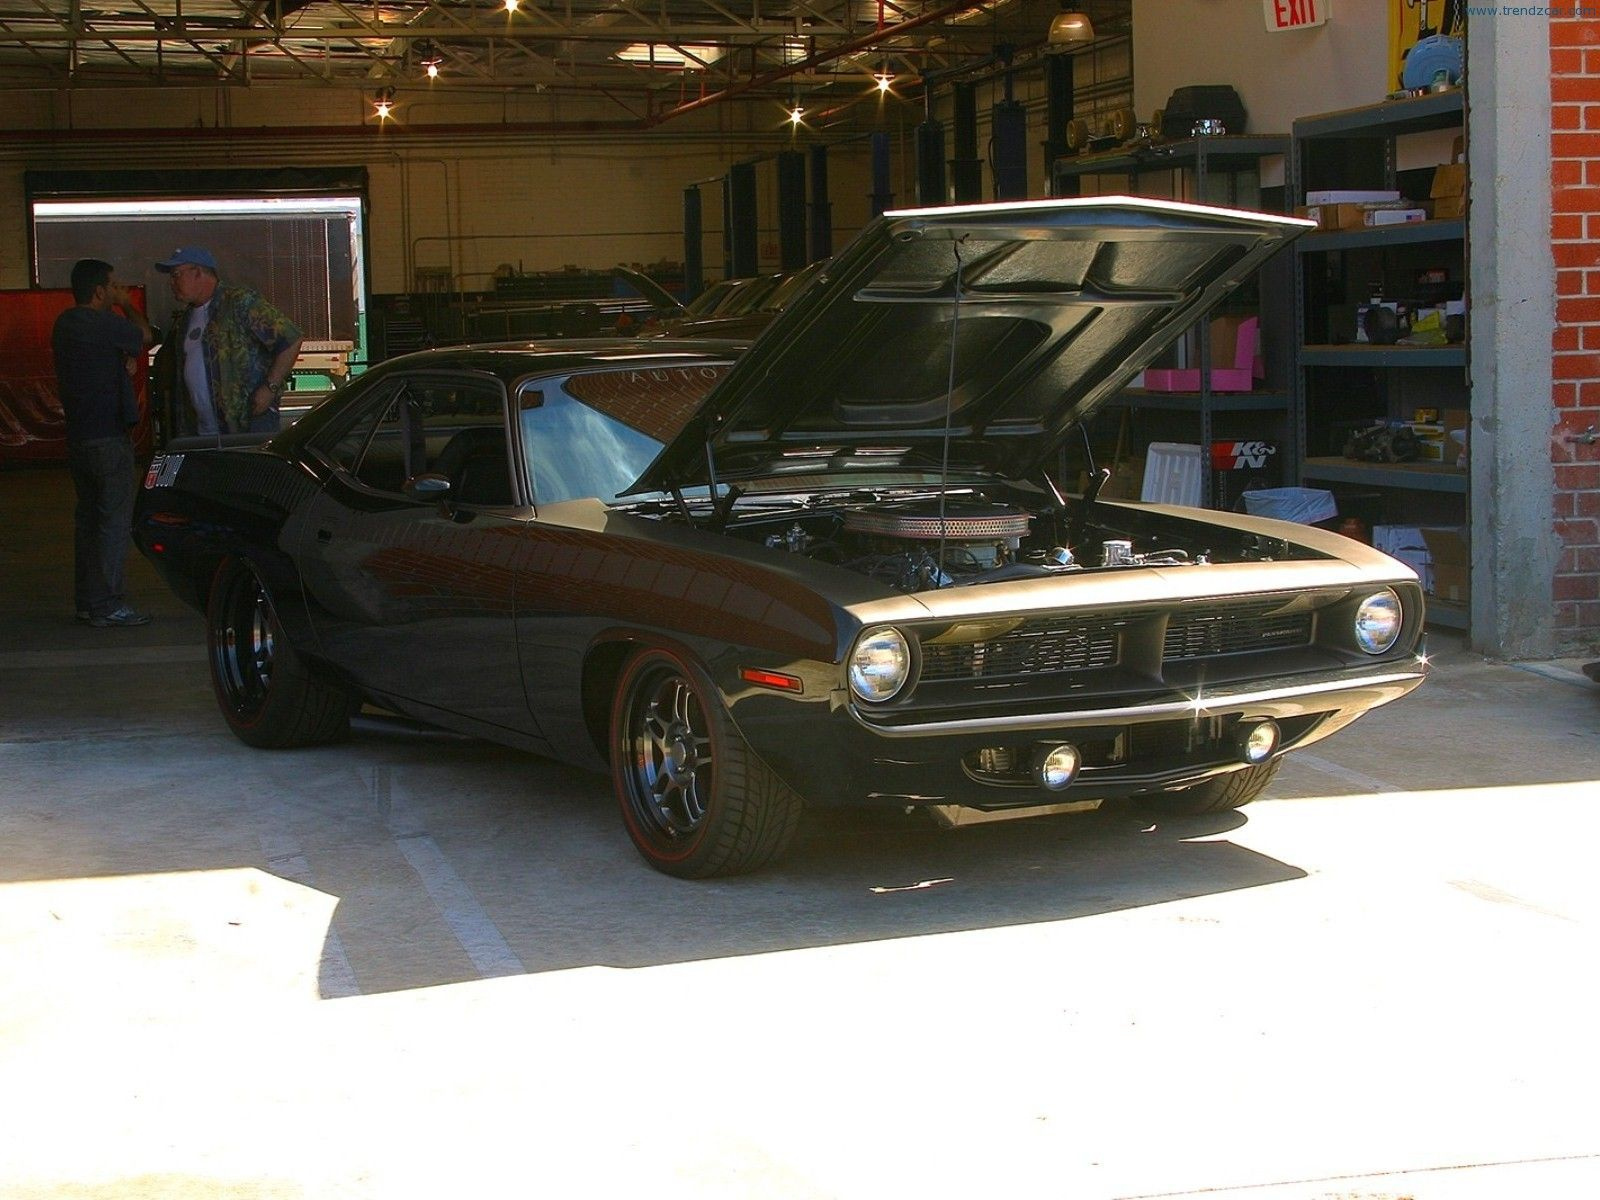 1970 Plymouth Cuda Front Angle  Fast  Furious 6 Car  Fast